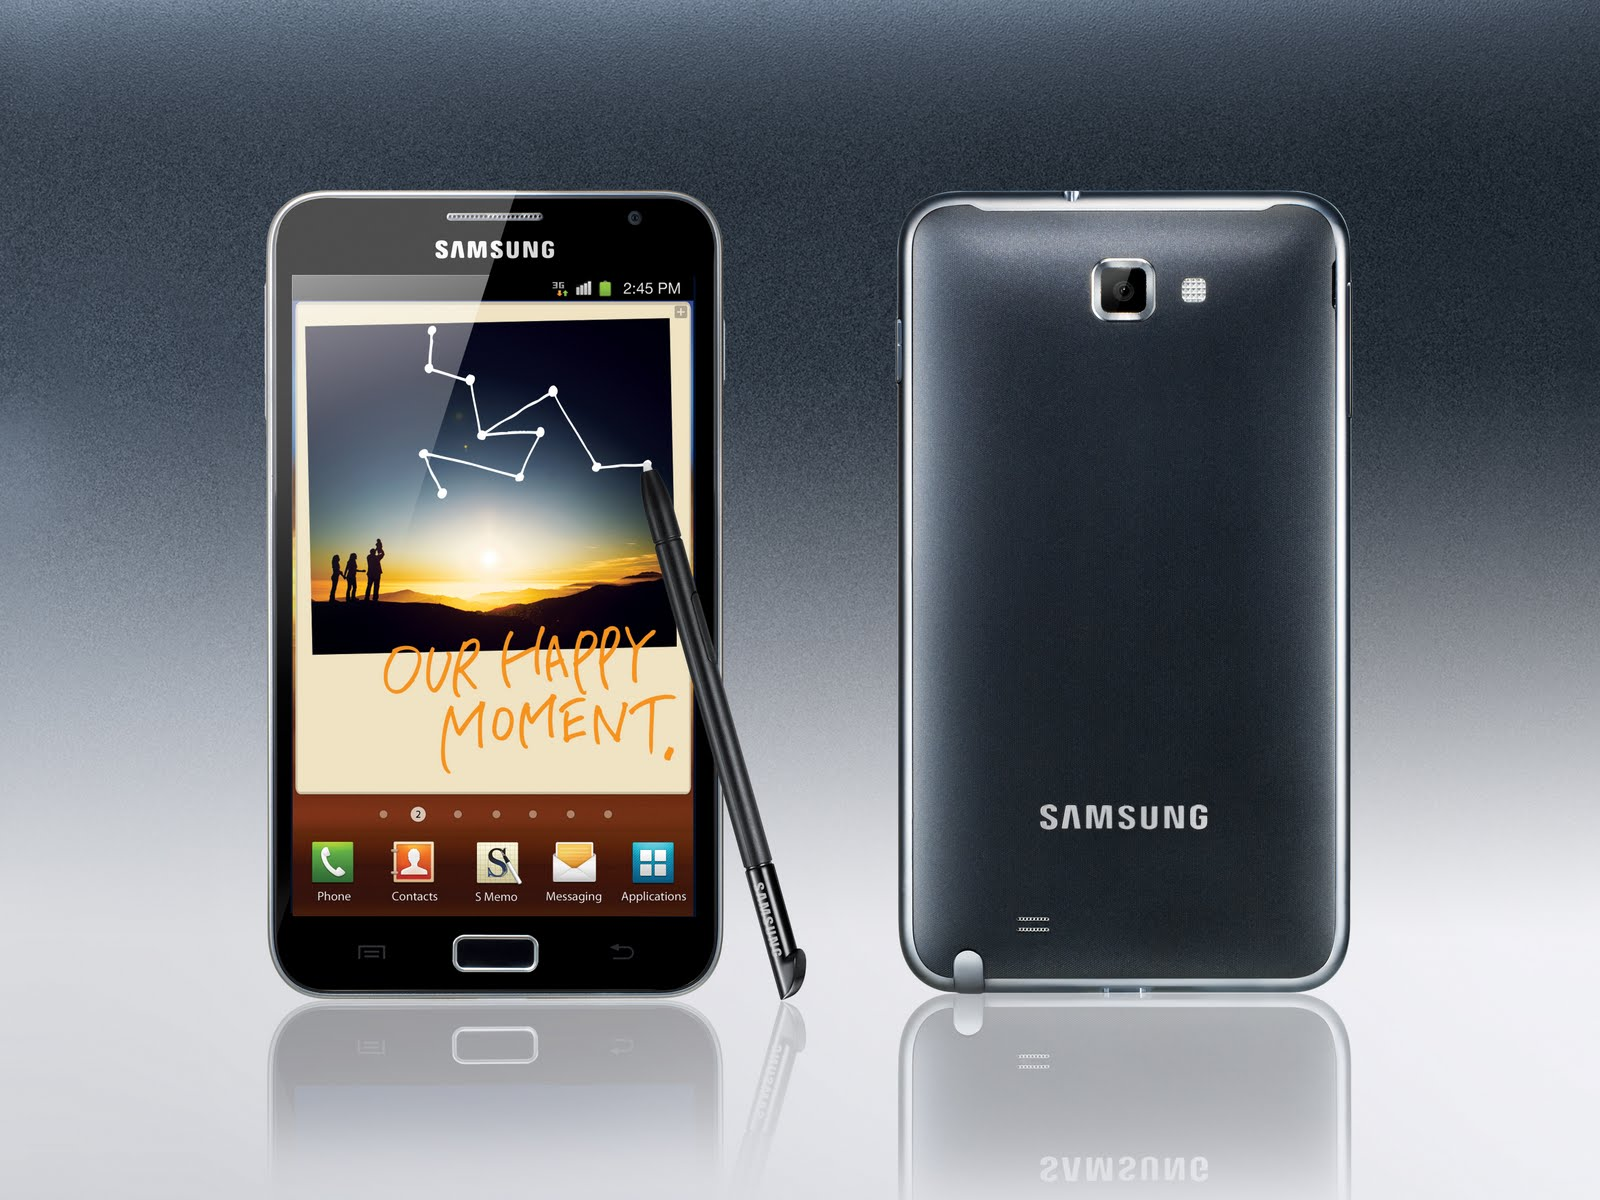 Samsung Galaxy Note (AT&T) Gets Android 4.0